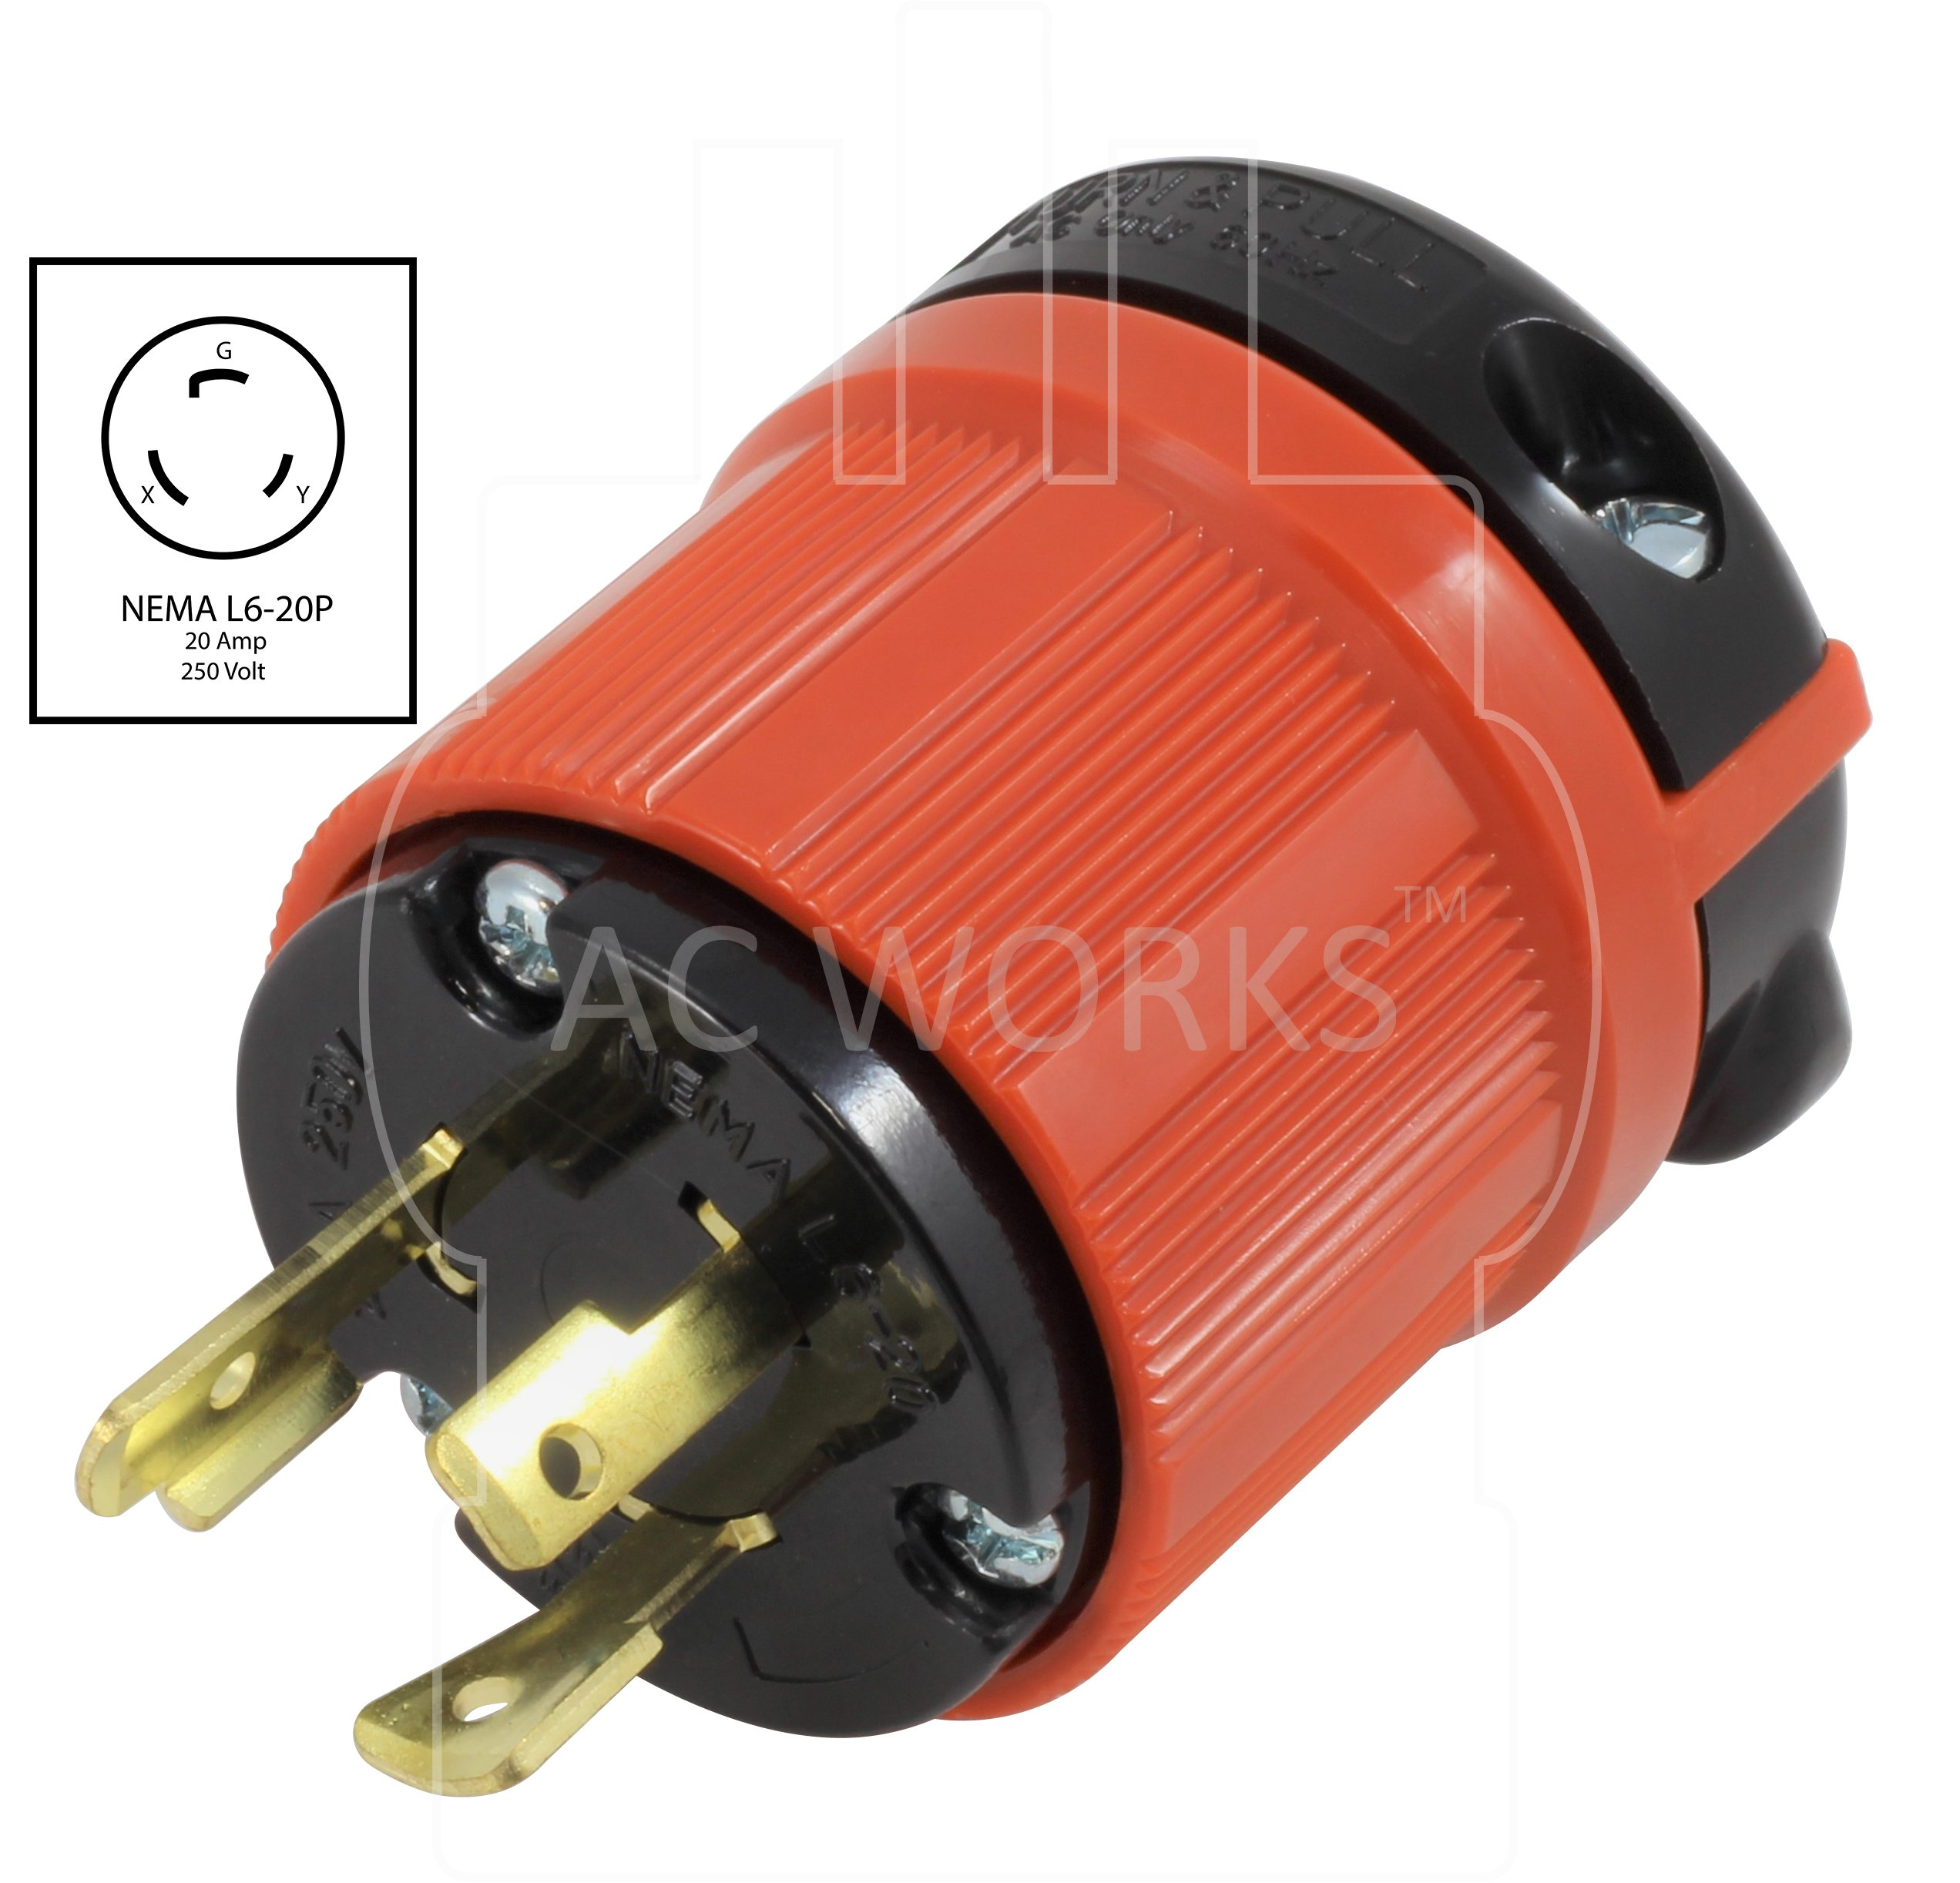 AC WORKS [ASL620P] NEMA L6-20P 20Amp 250Volt 3 Prong Locking Male Plug With UL, C-UL Approval by AC WORKS (Image #2)